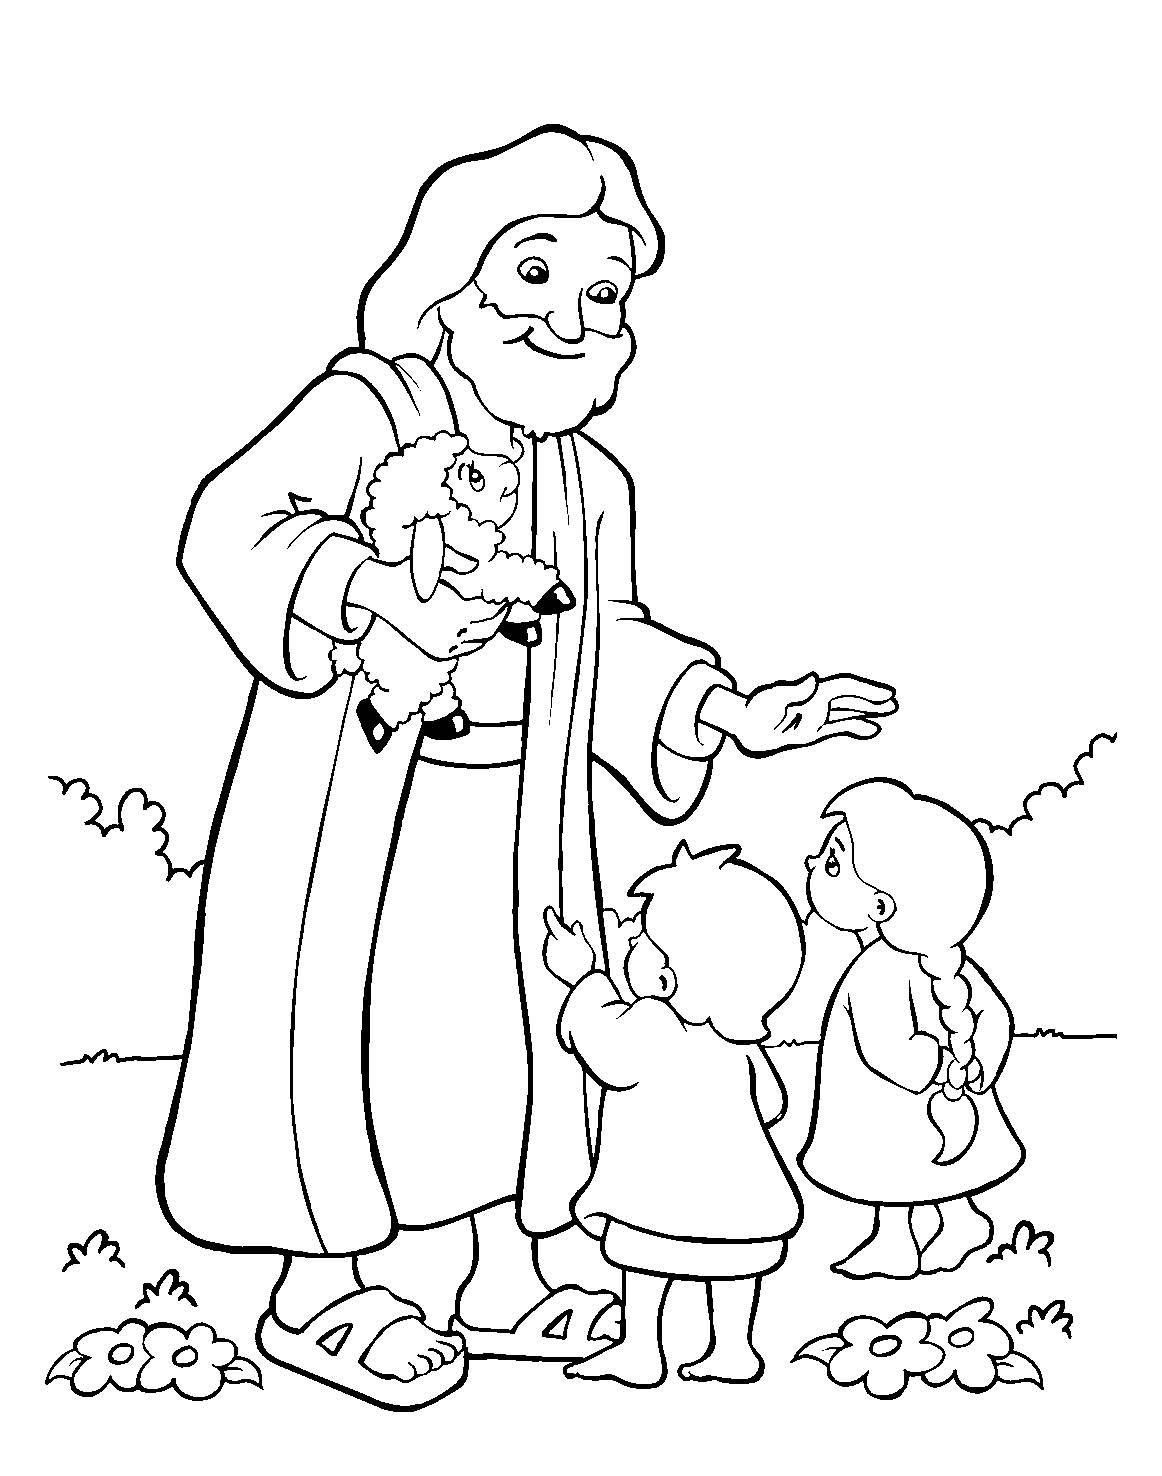 Coloring Pages for Sunday School Lessons Printable 2b - Free For Children